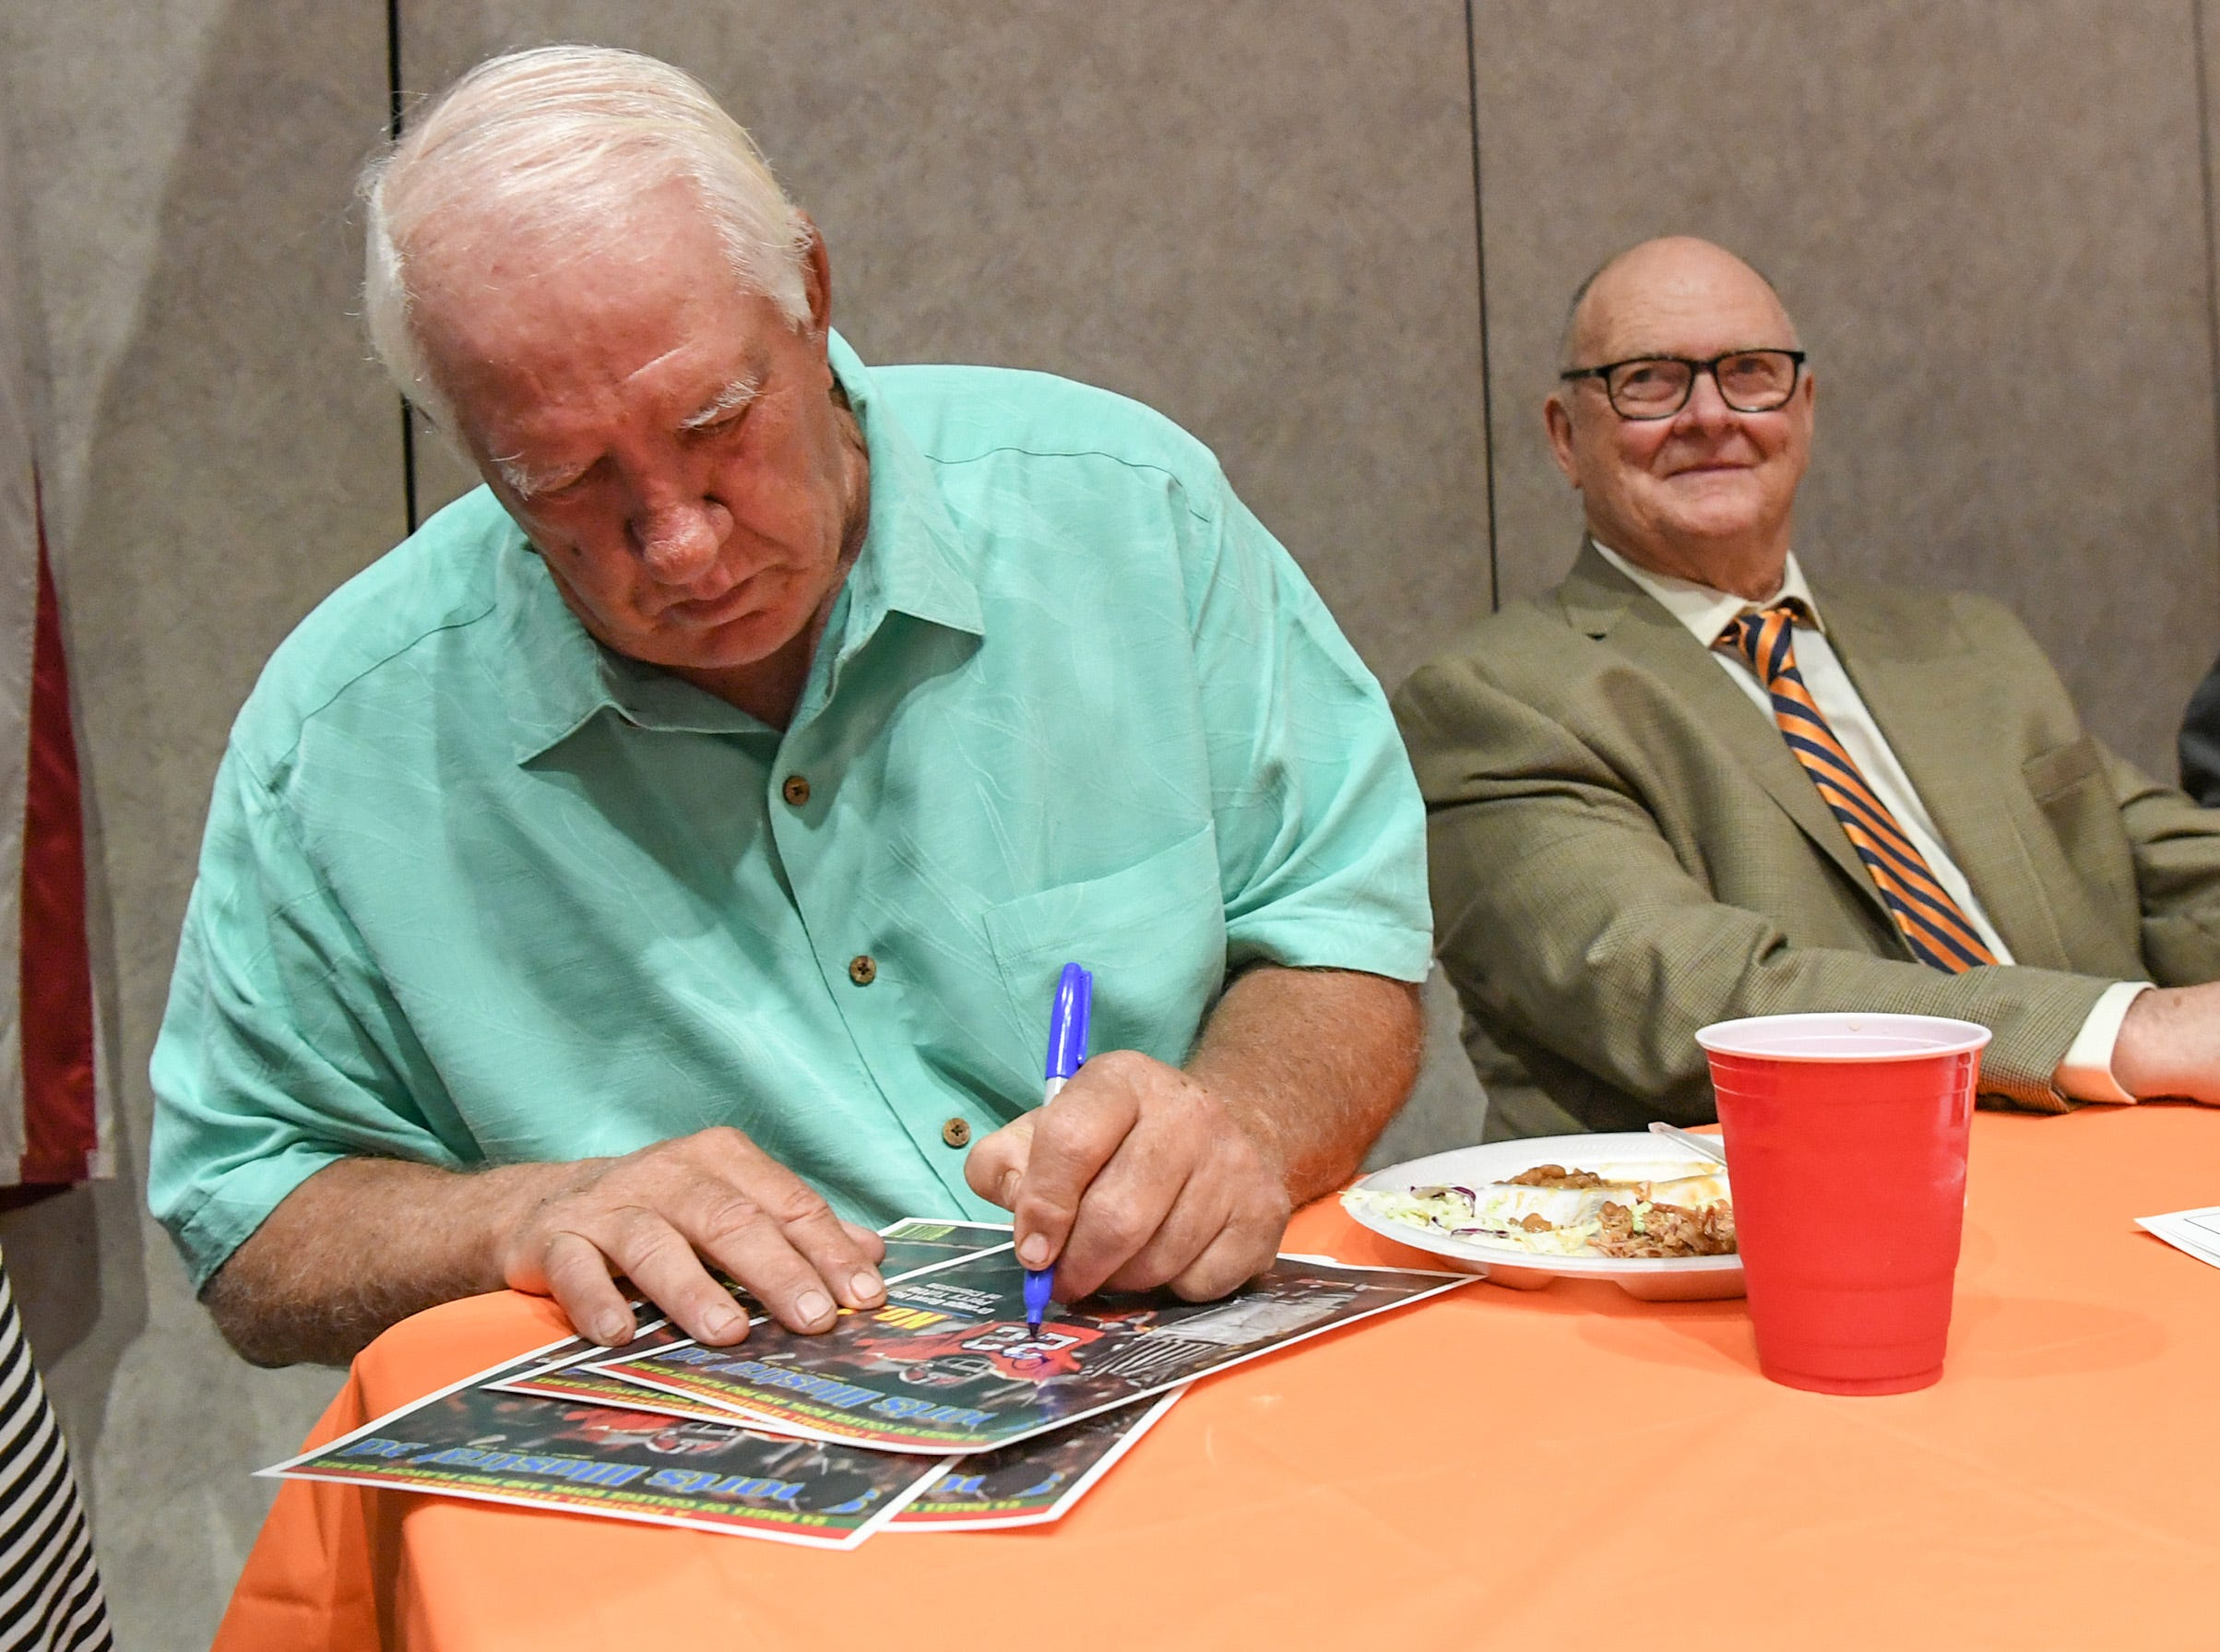 Former Clemson football coach Danny Ford signs an autograph before the Anderson Area Touchdown Club Annual Awards Banquet at the Anderson County Civic Center Monday, April 8th, 2019.